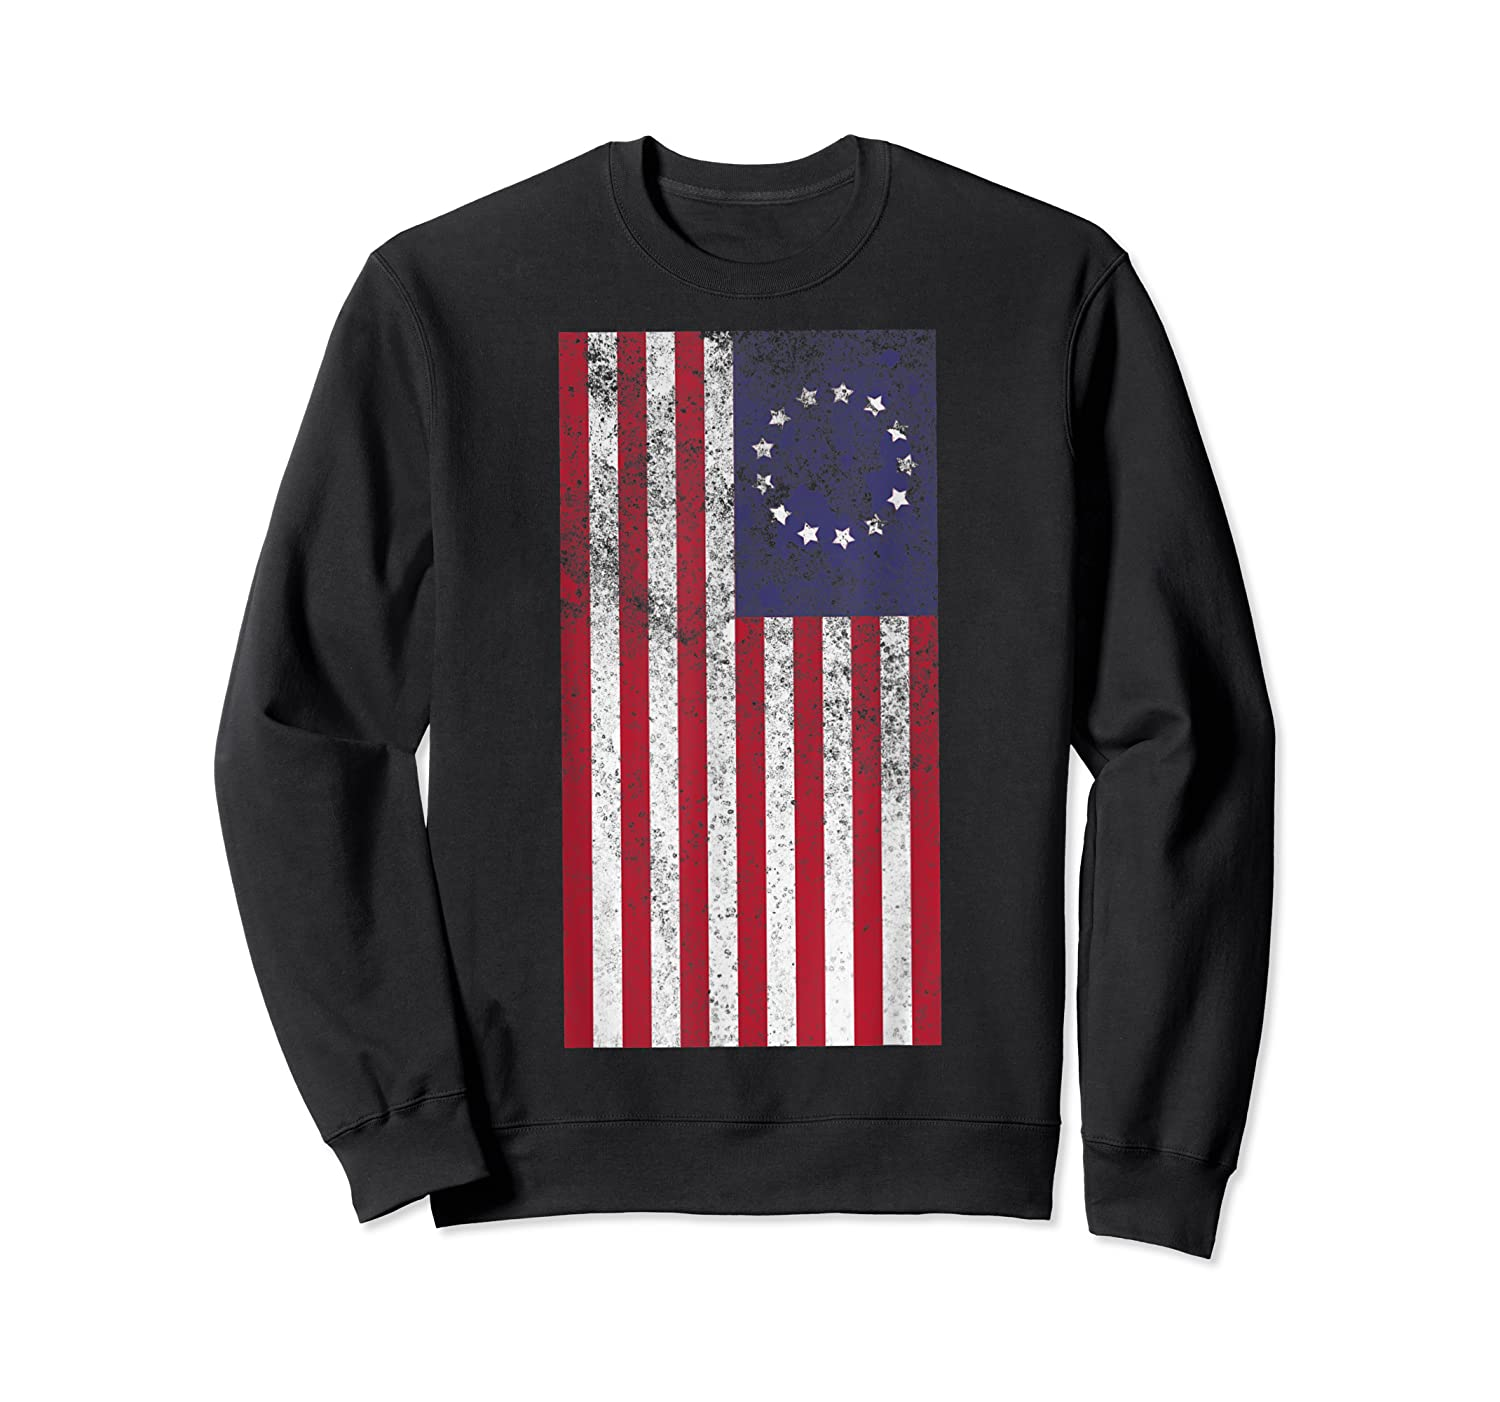 Vintage Retro Betsy Ross Shirt 4th Of July American Flag T Shirt Crewneck Sweater